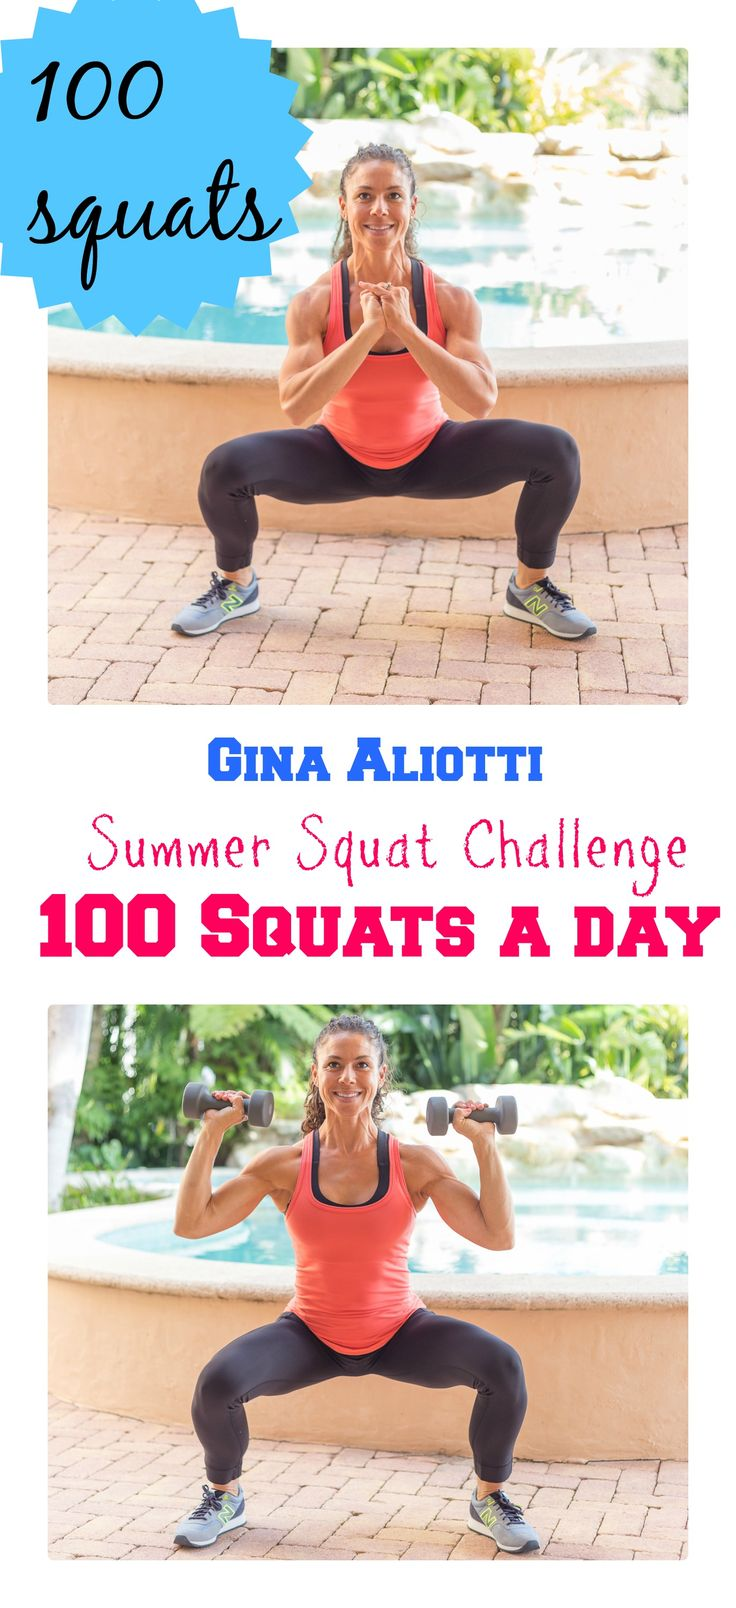 Summer Squat Challenge. 100 Squats a Day Every Day of Summer. Any Variation and Split however you wish... Goal = 100 Squats a Day!!